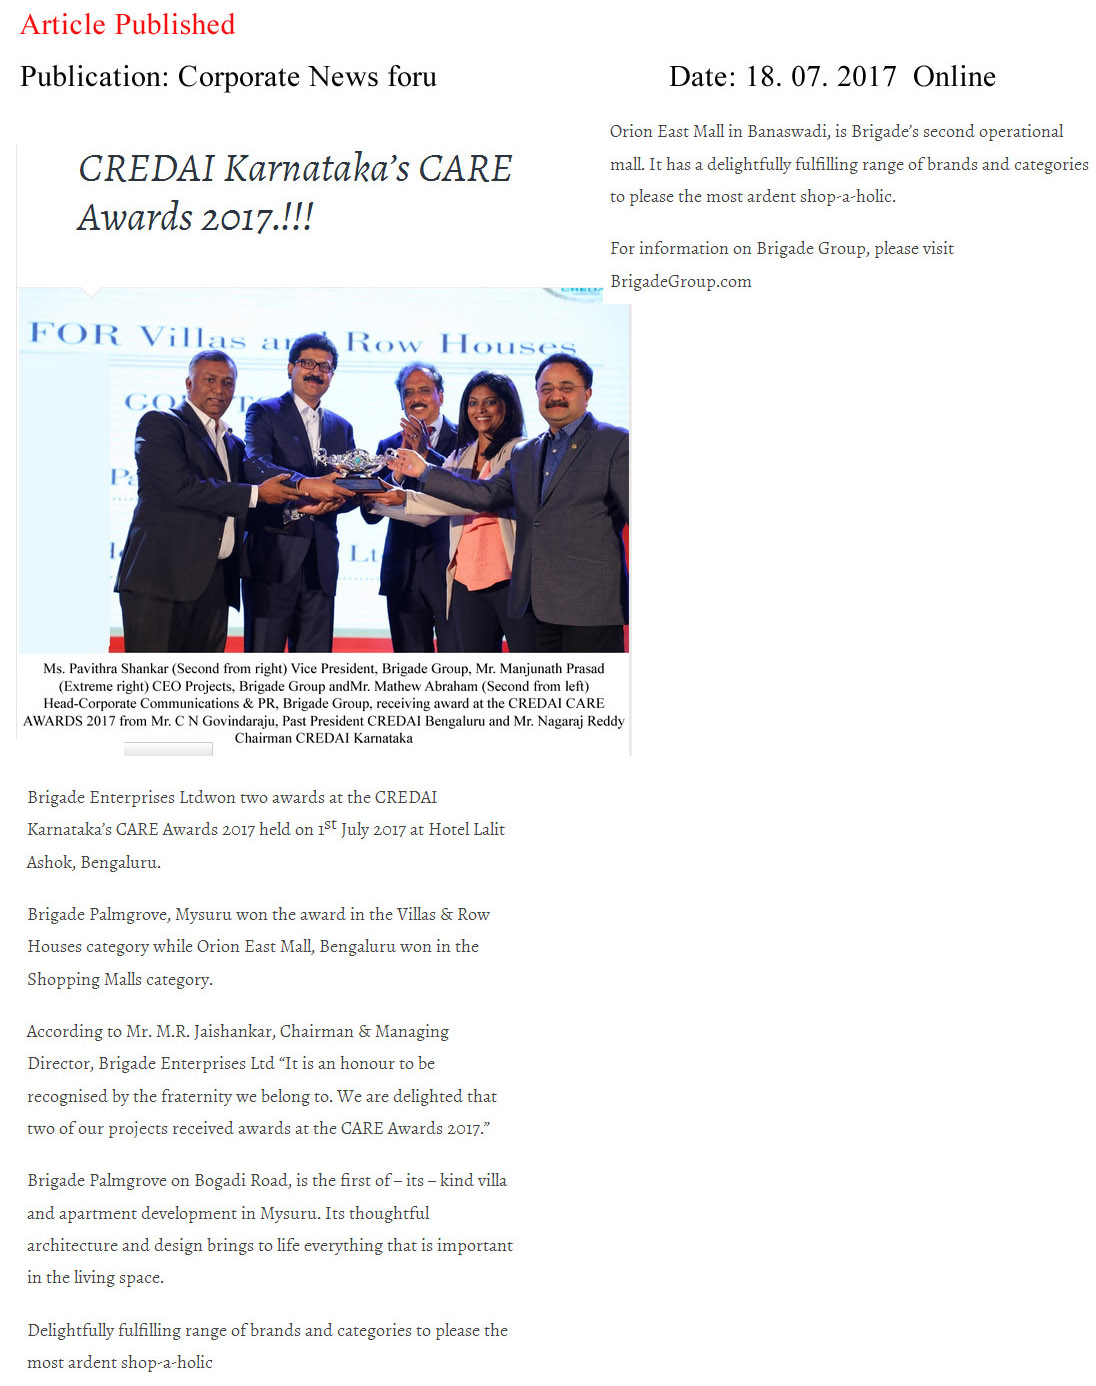 Brigade Wins Two Awards at CREDAI Karnataka's CARE Awards 2017—Corporate News for you-Online